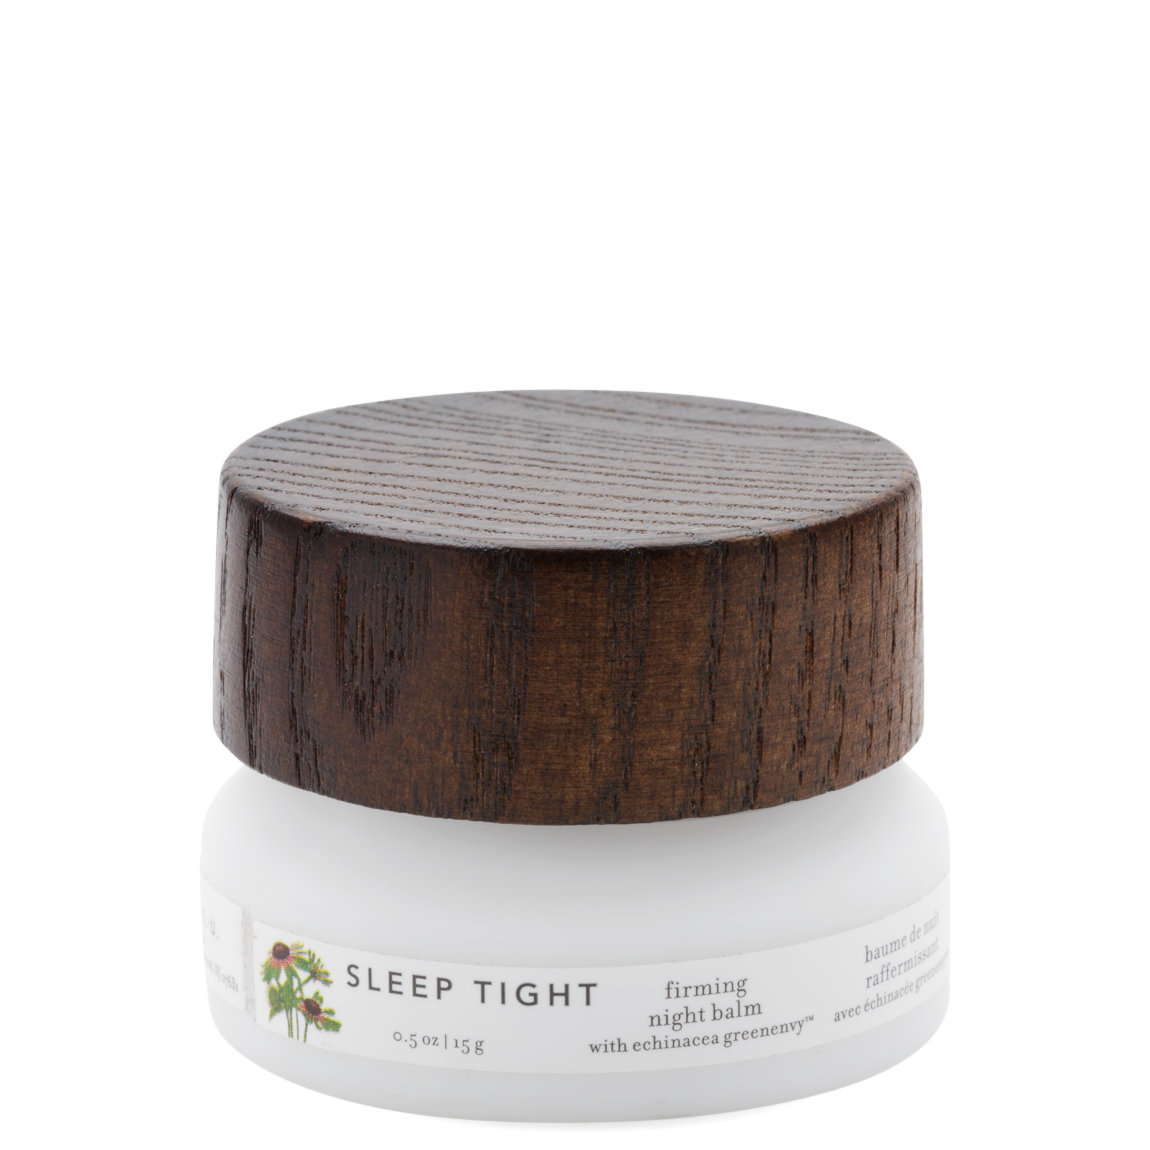 Farmacy Sleep Tight Firming Night Balm product smear.